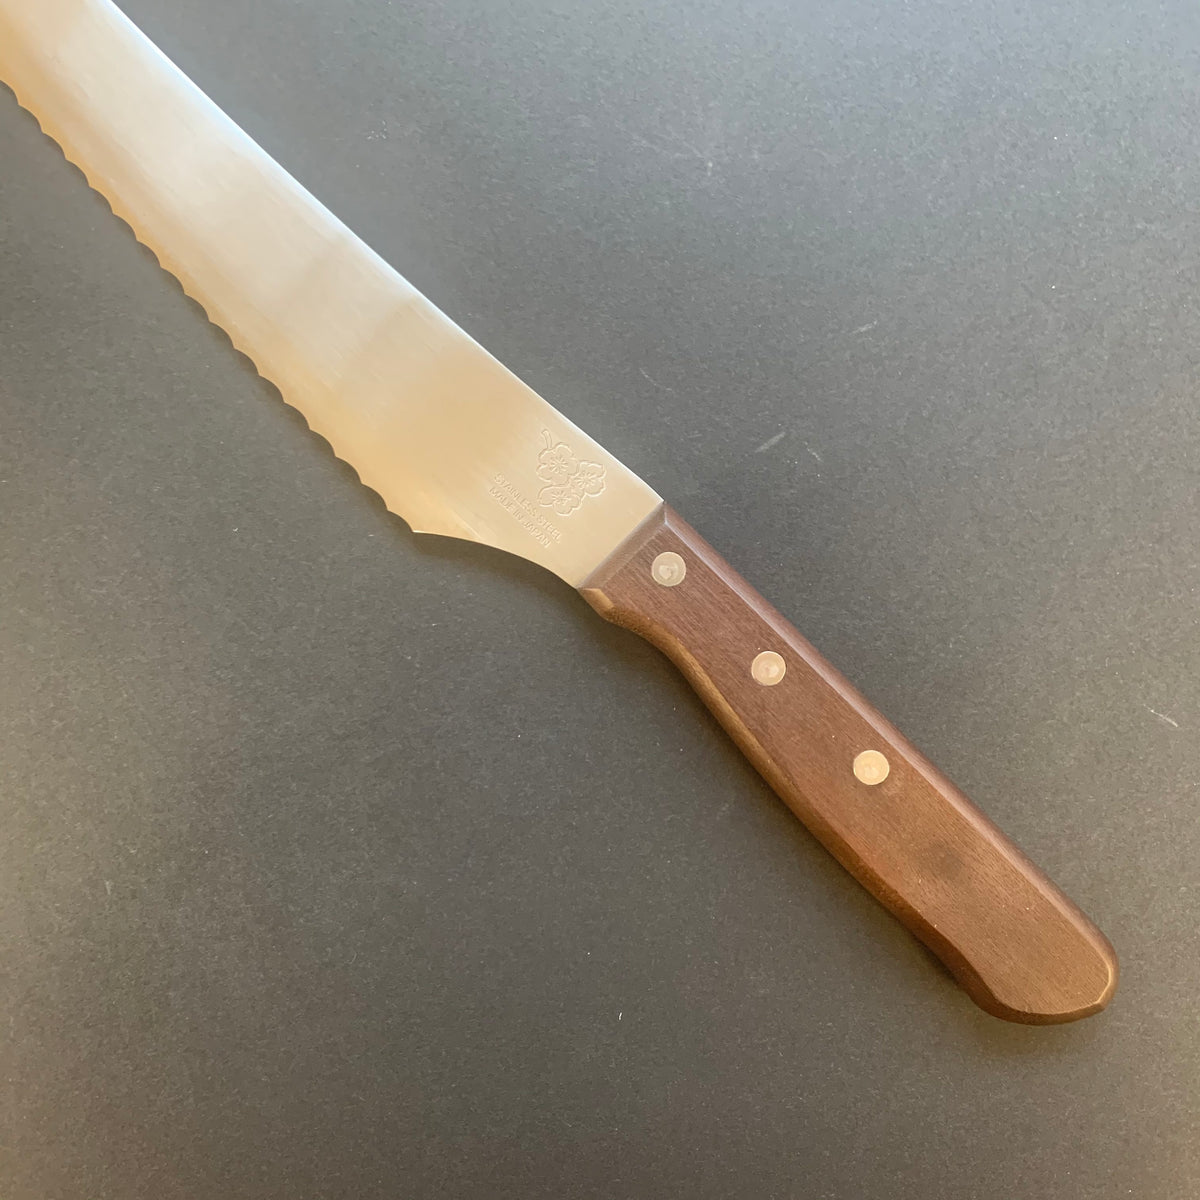 Japanese bread knife